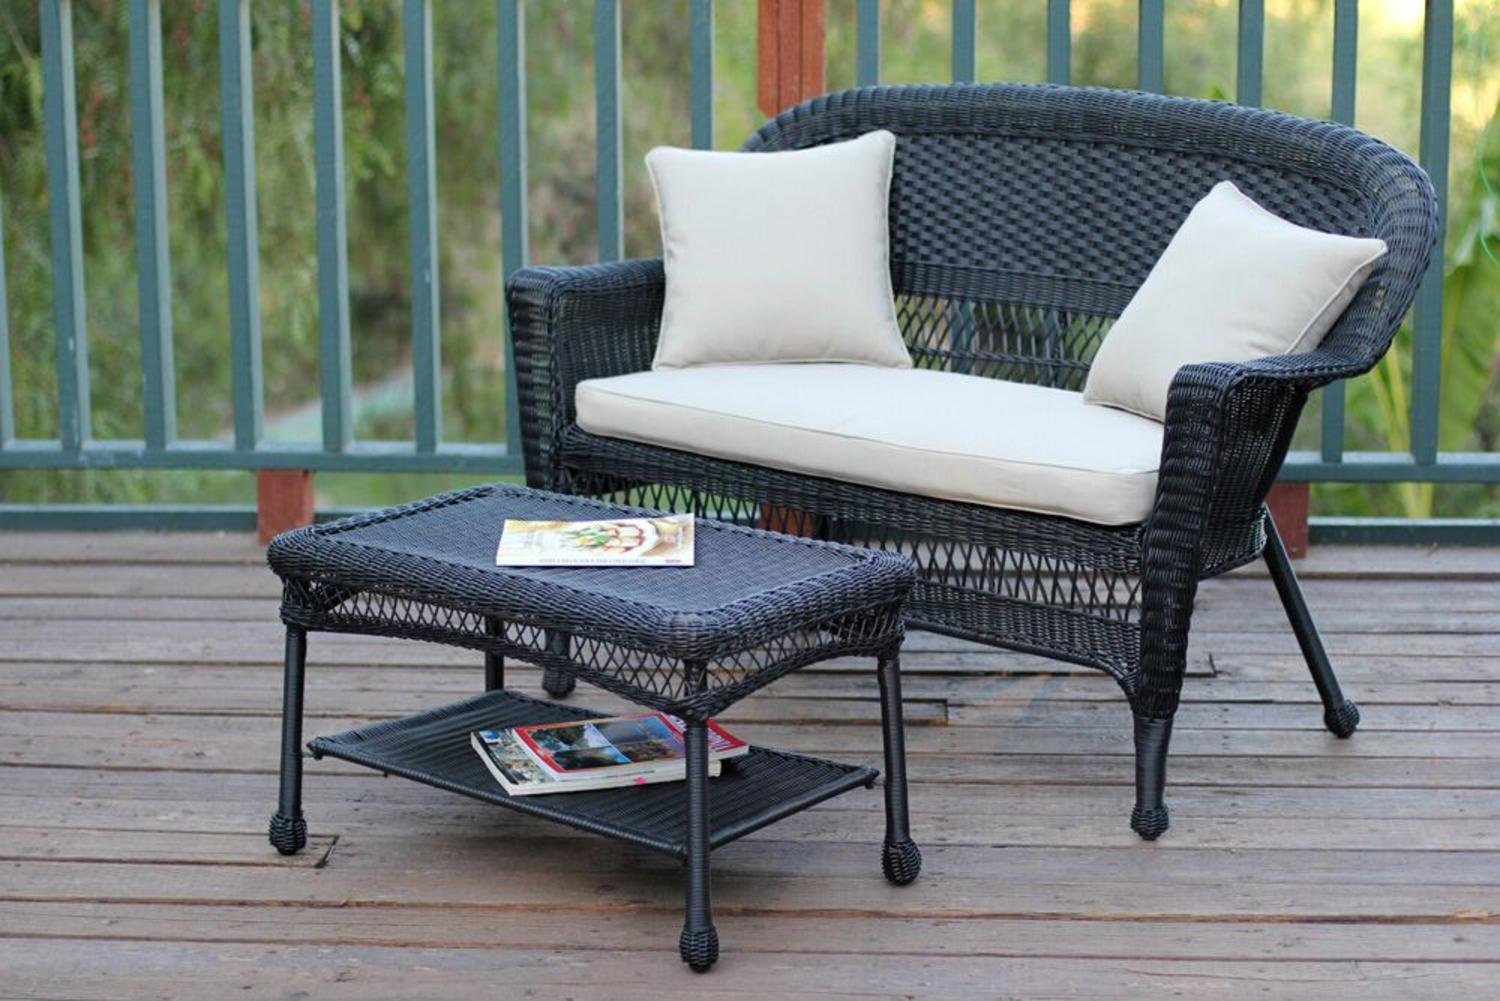 2-Piece Oswald Black Resin Wicker Patio Loveseat and Coffee Table Set Tan Cushion by CC Outdoor Living